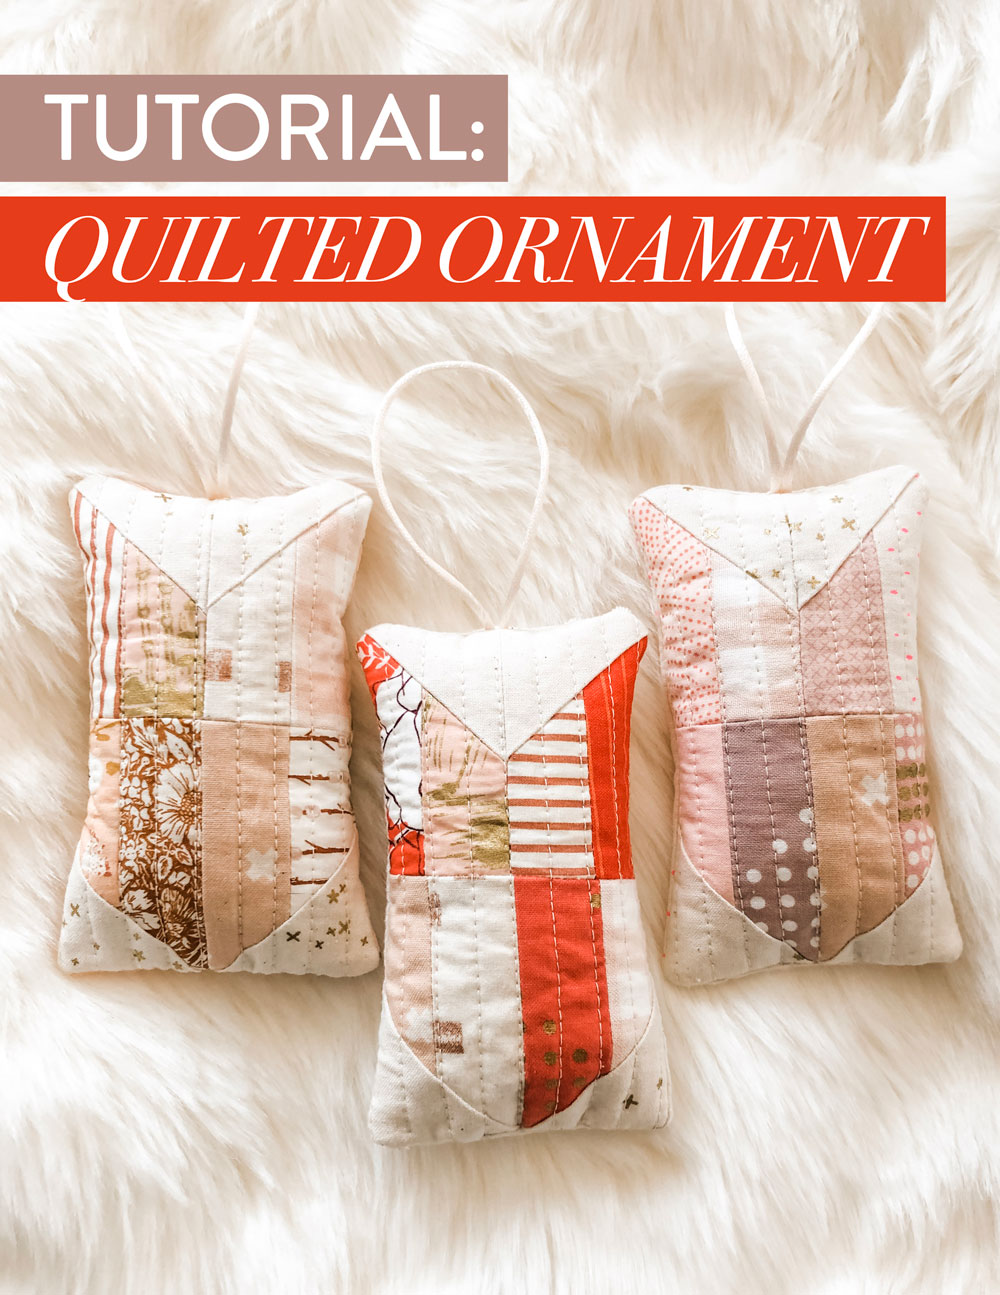 A step by step photo tutorial on how to make a modern quilted ornament. This free tutorial scales down a Tail Feather quilt block. Beginner friendly!